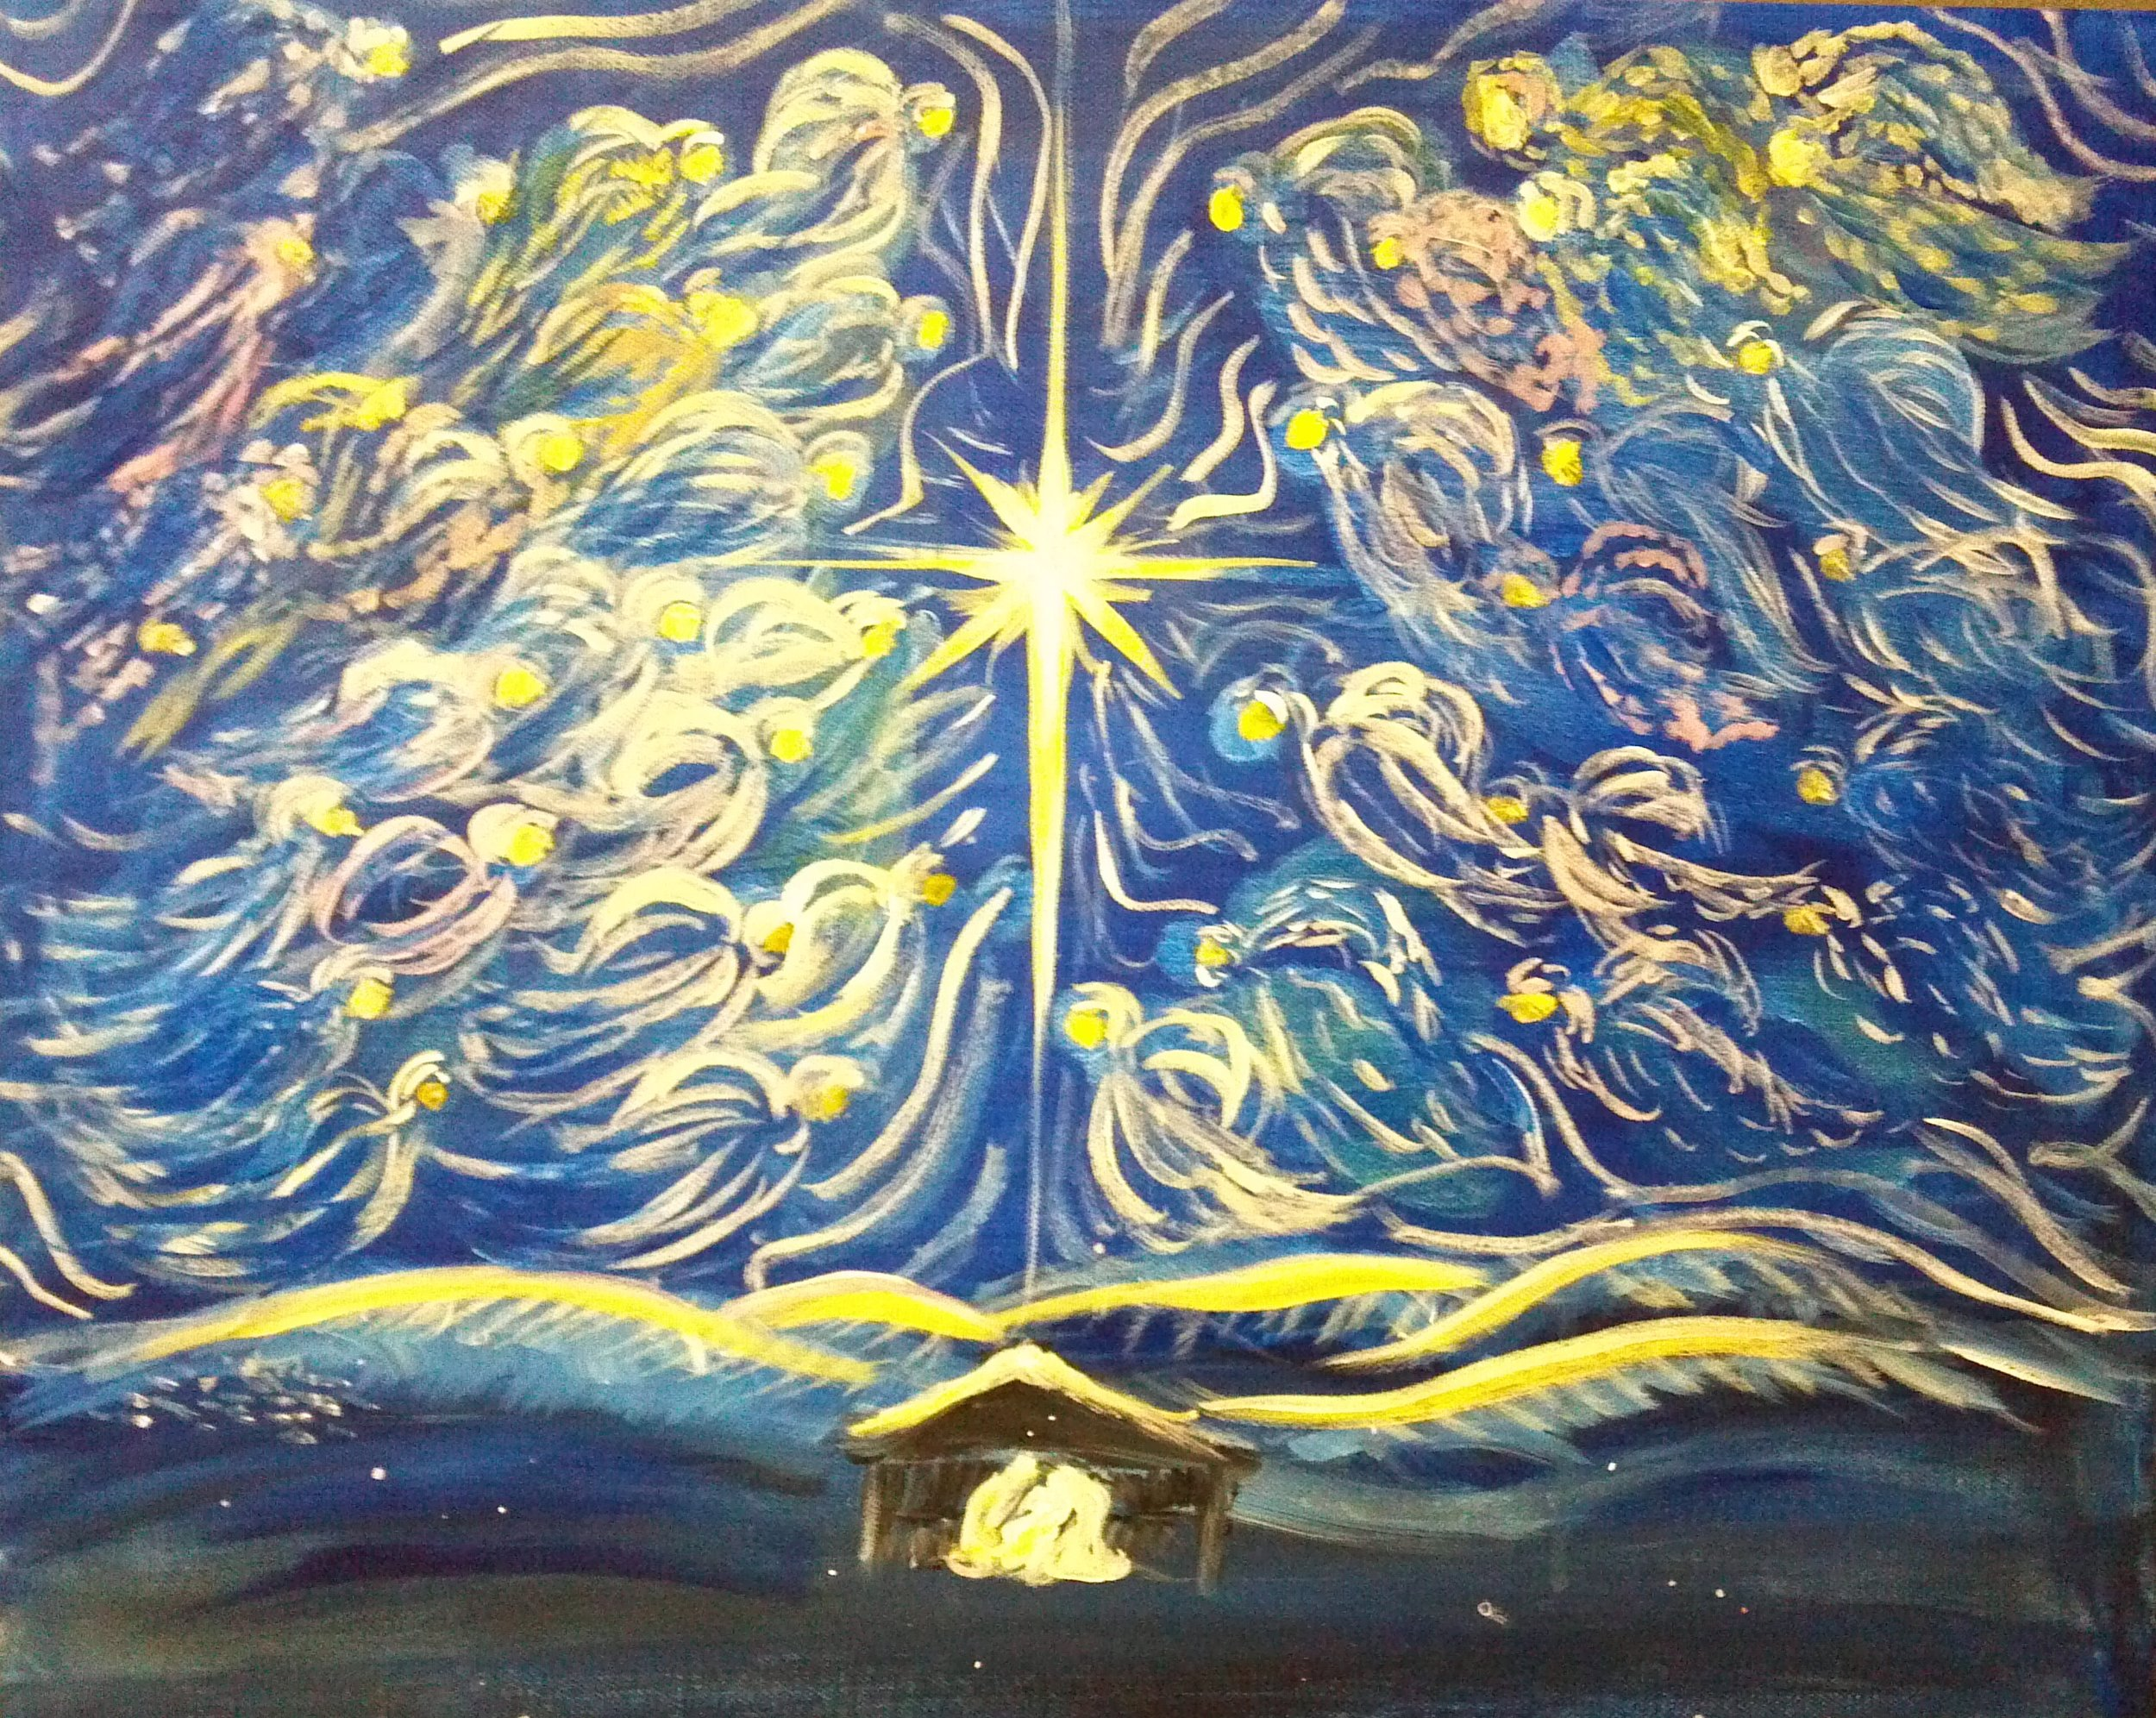 van-gogh-nativity.jpg